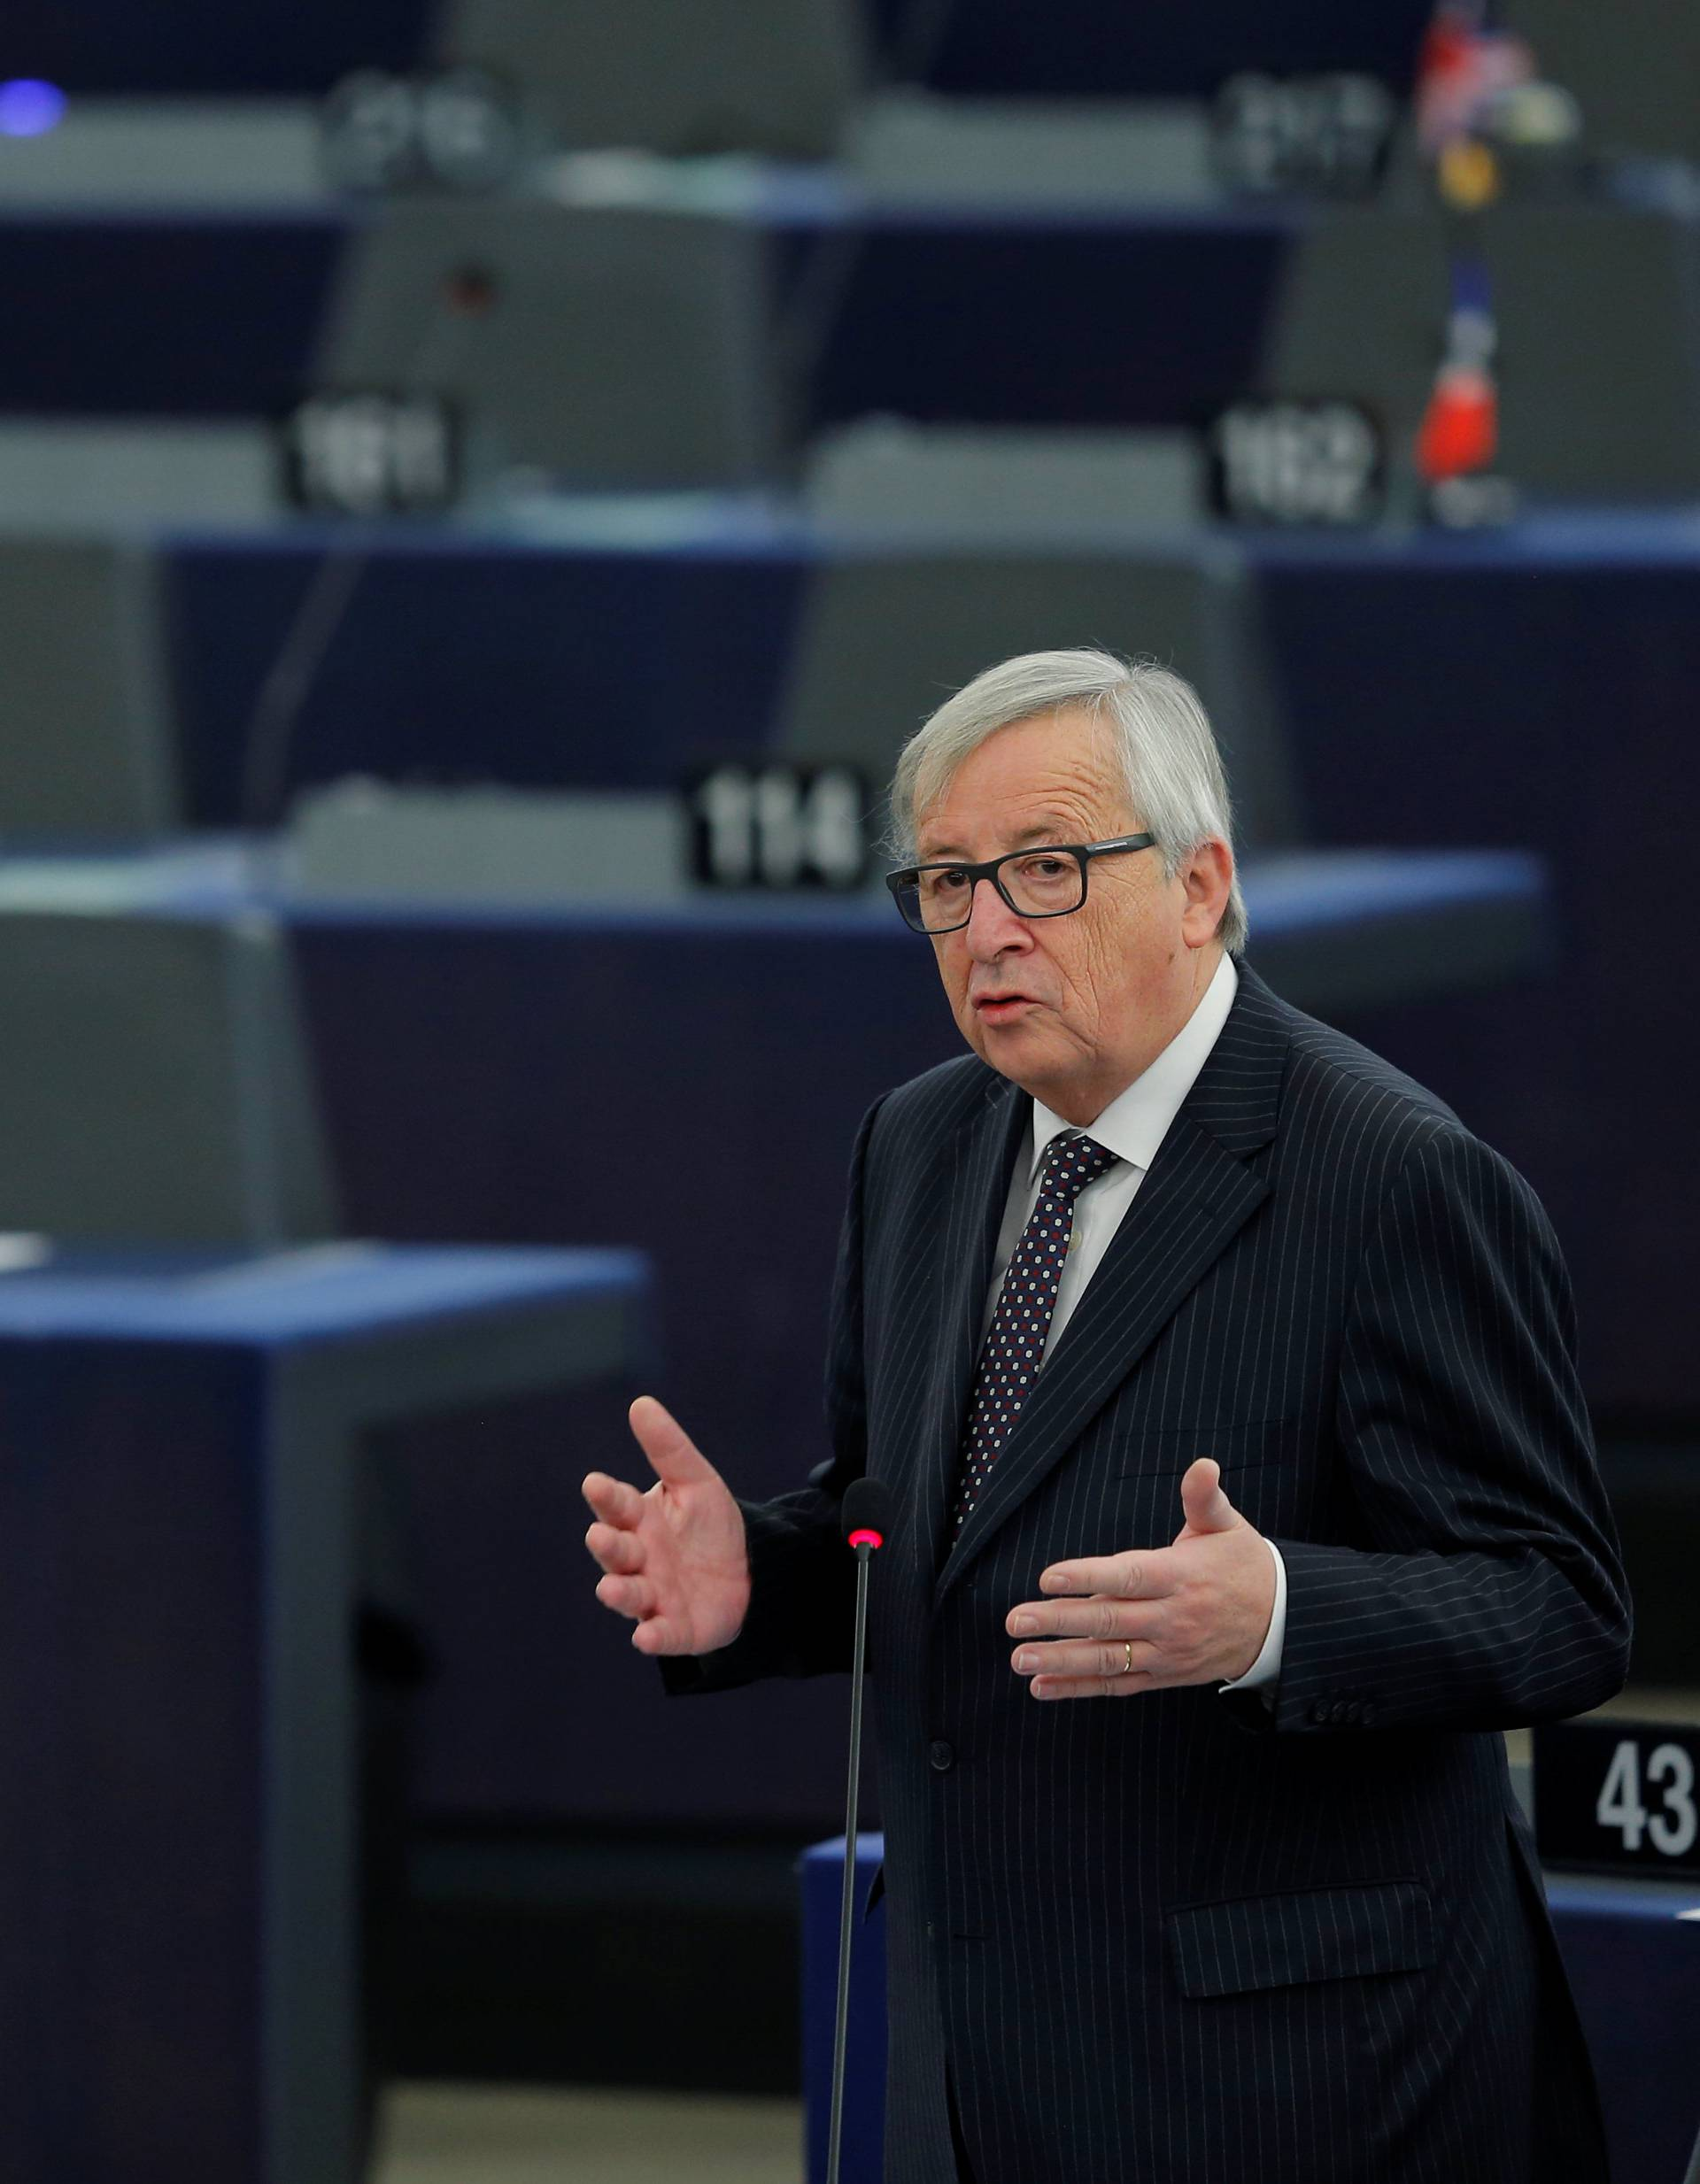 European Commission President Juncker delivers a speech during a debate on the Future of Europe at the European Parliament in Strasbourg